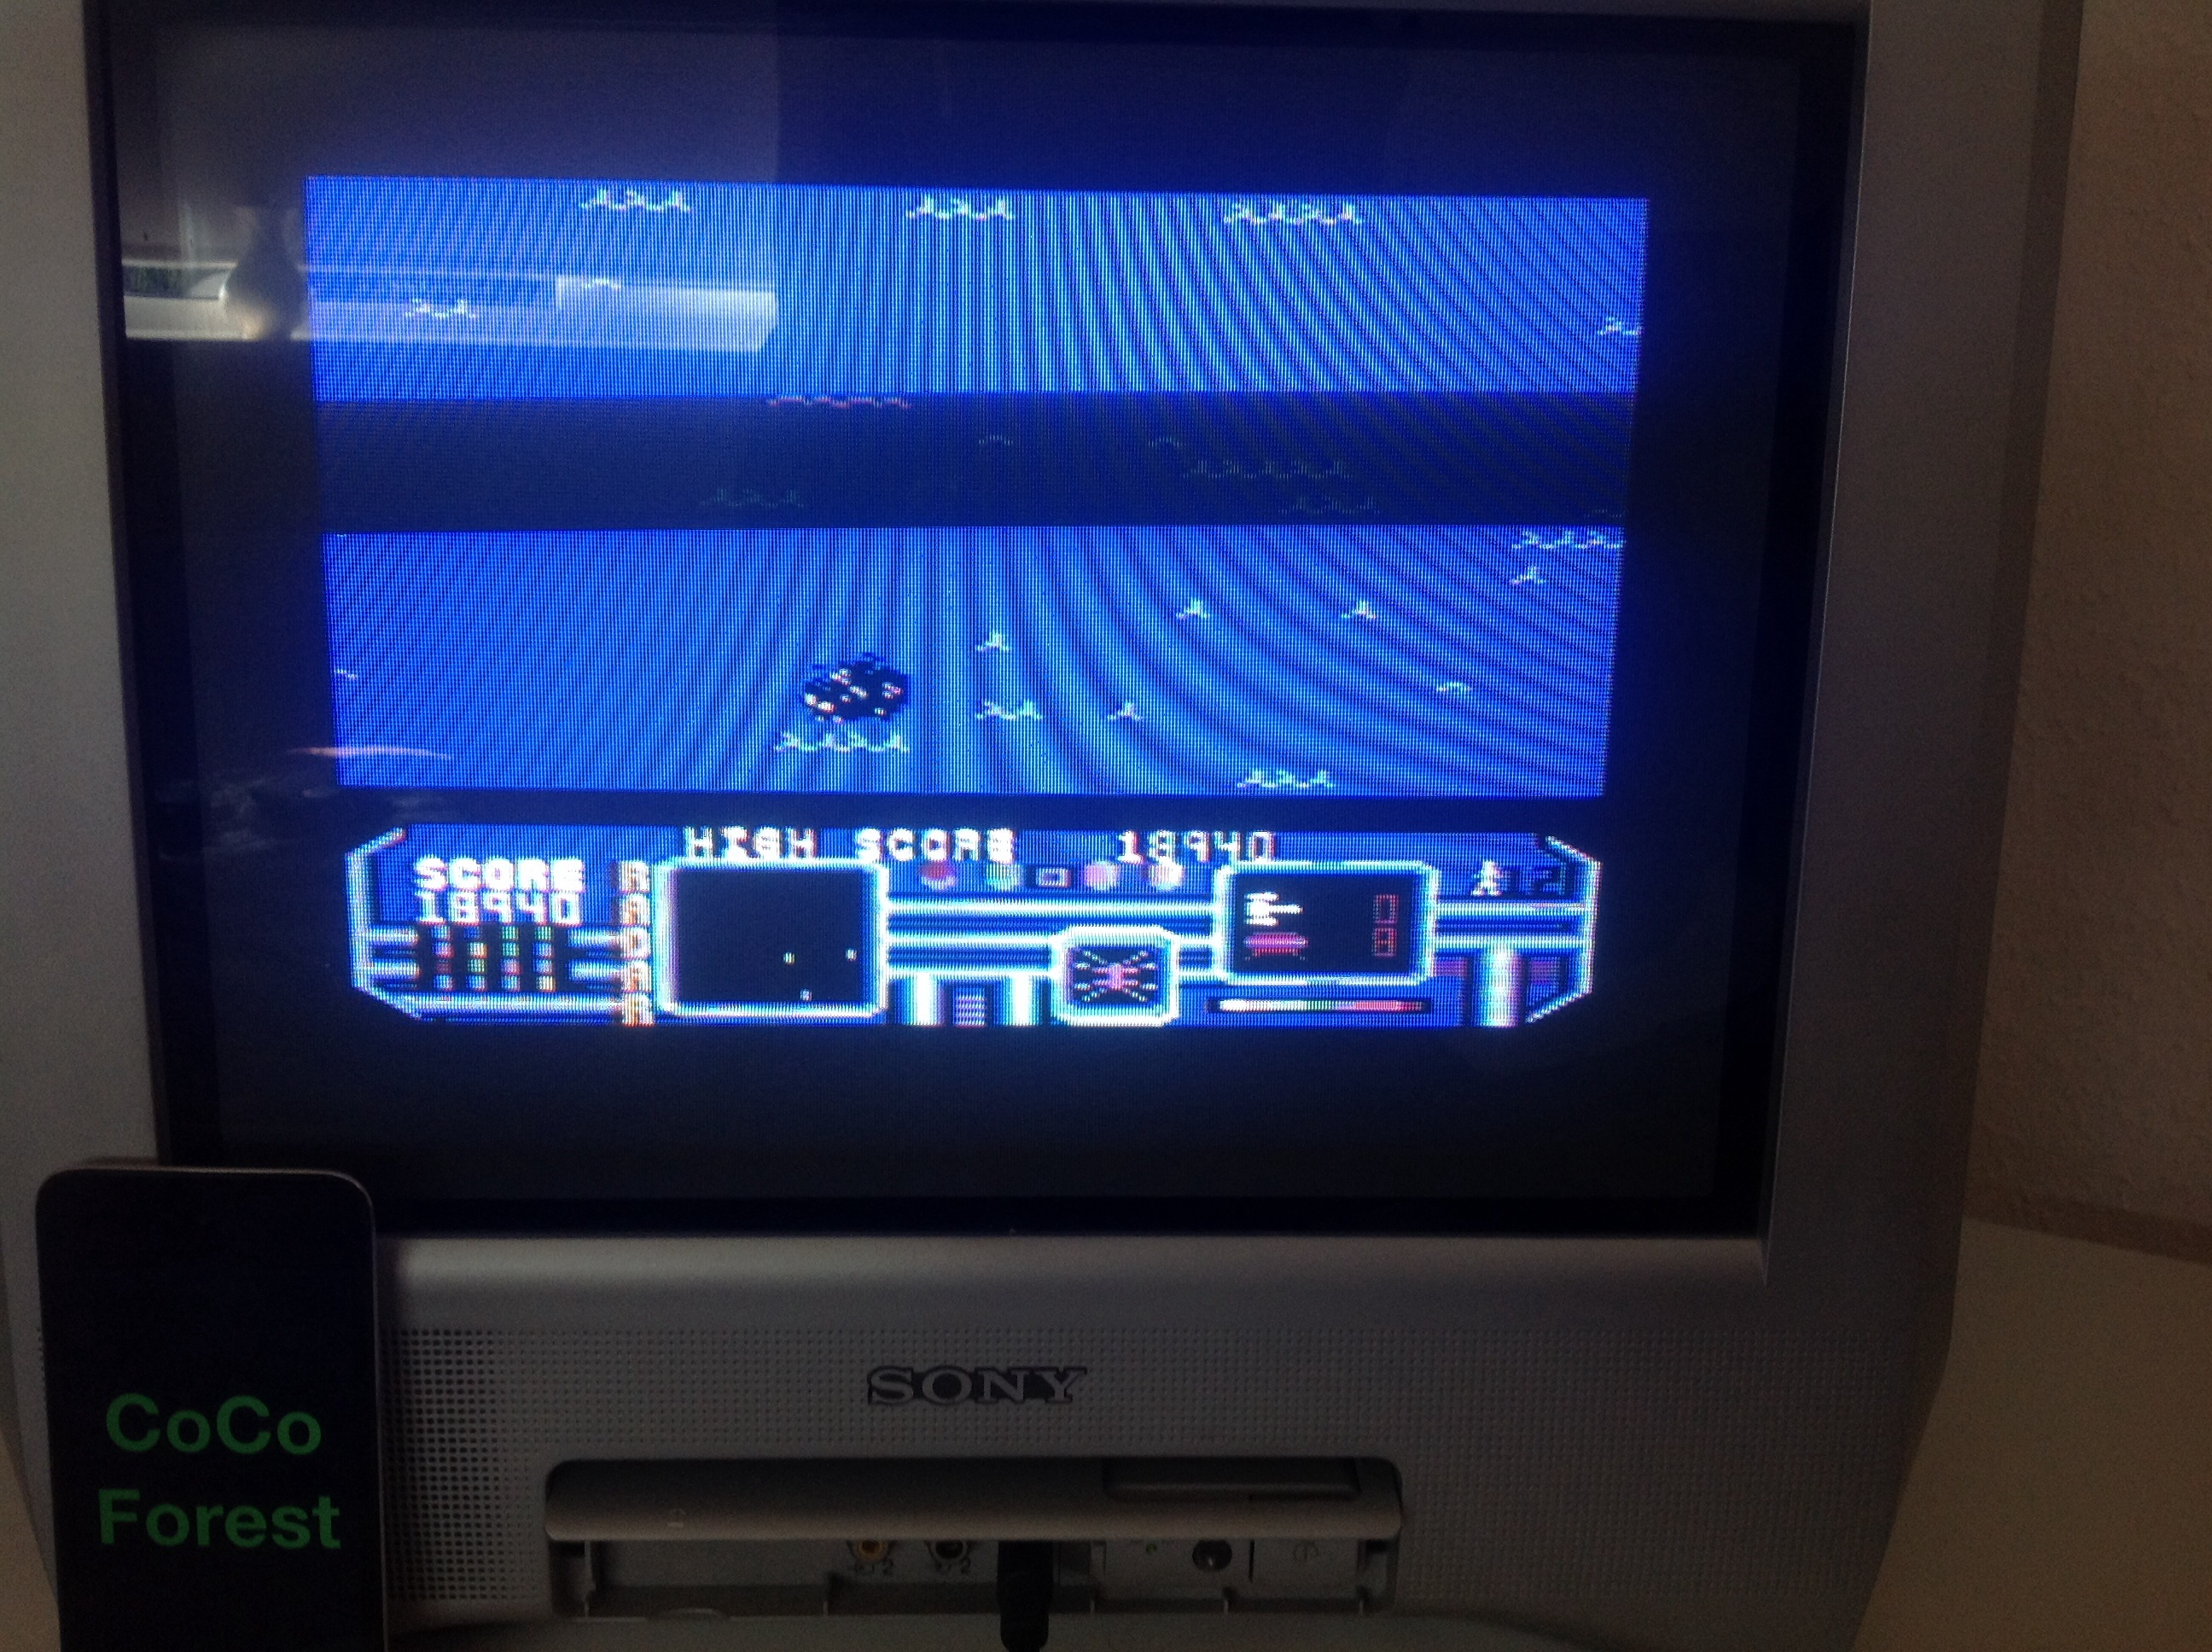 CoCoForest: Panther (Commodore 64) 18,940 points on 2014-09-07 10:49:50